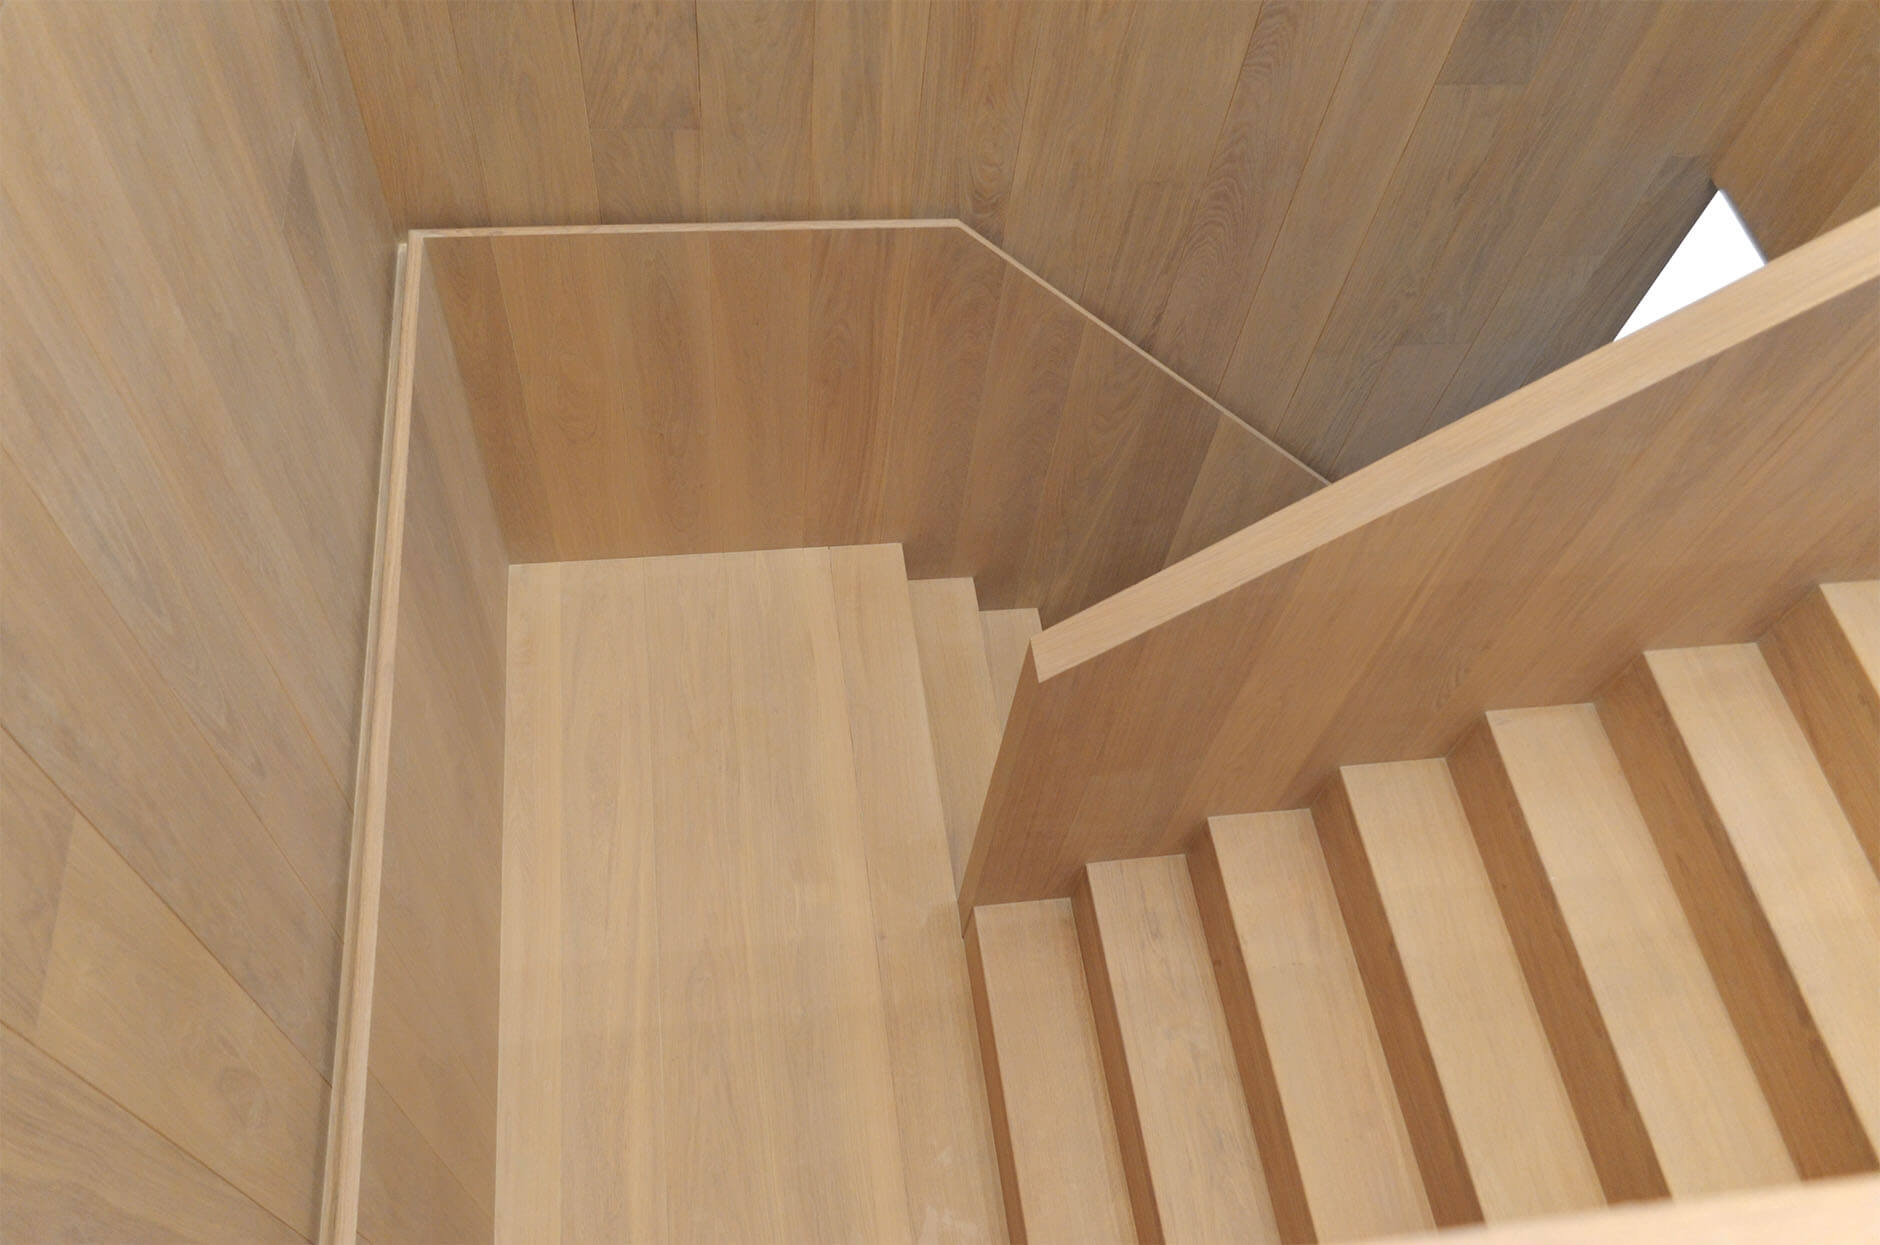 Wood staircase in an office building with natural looking oak wood.